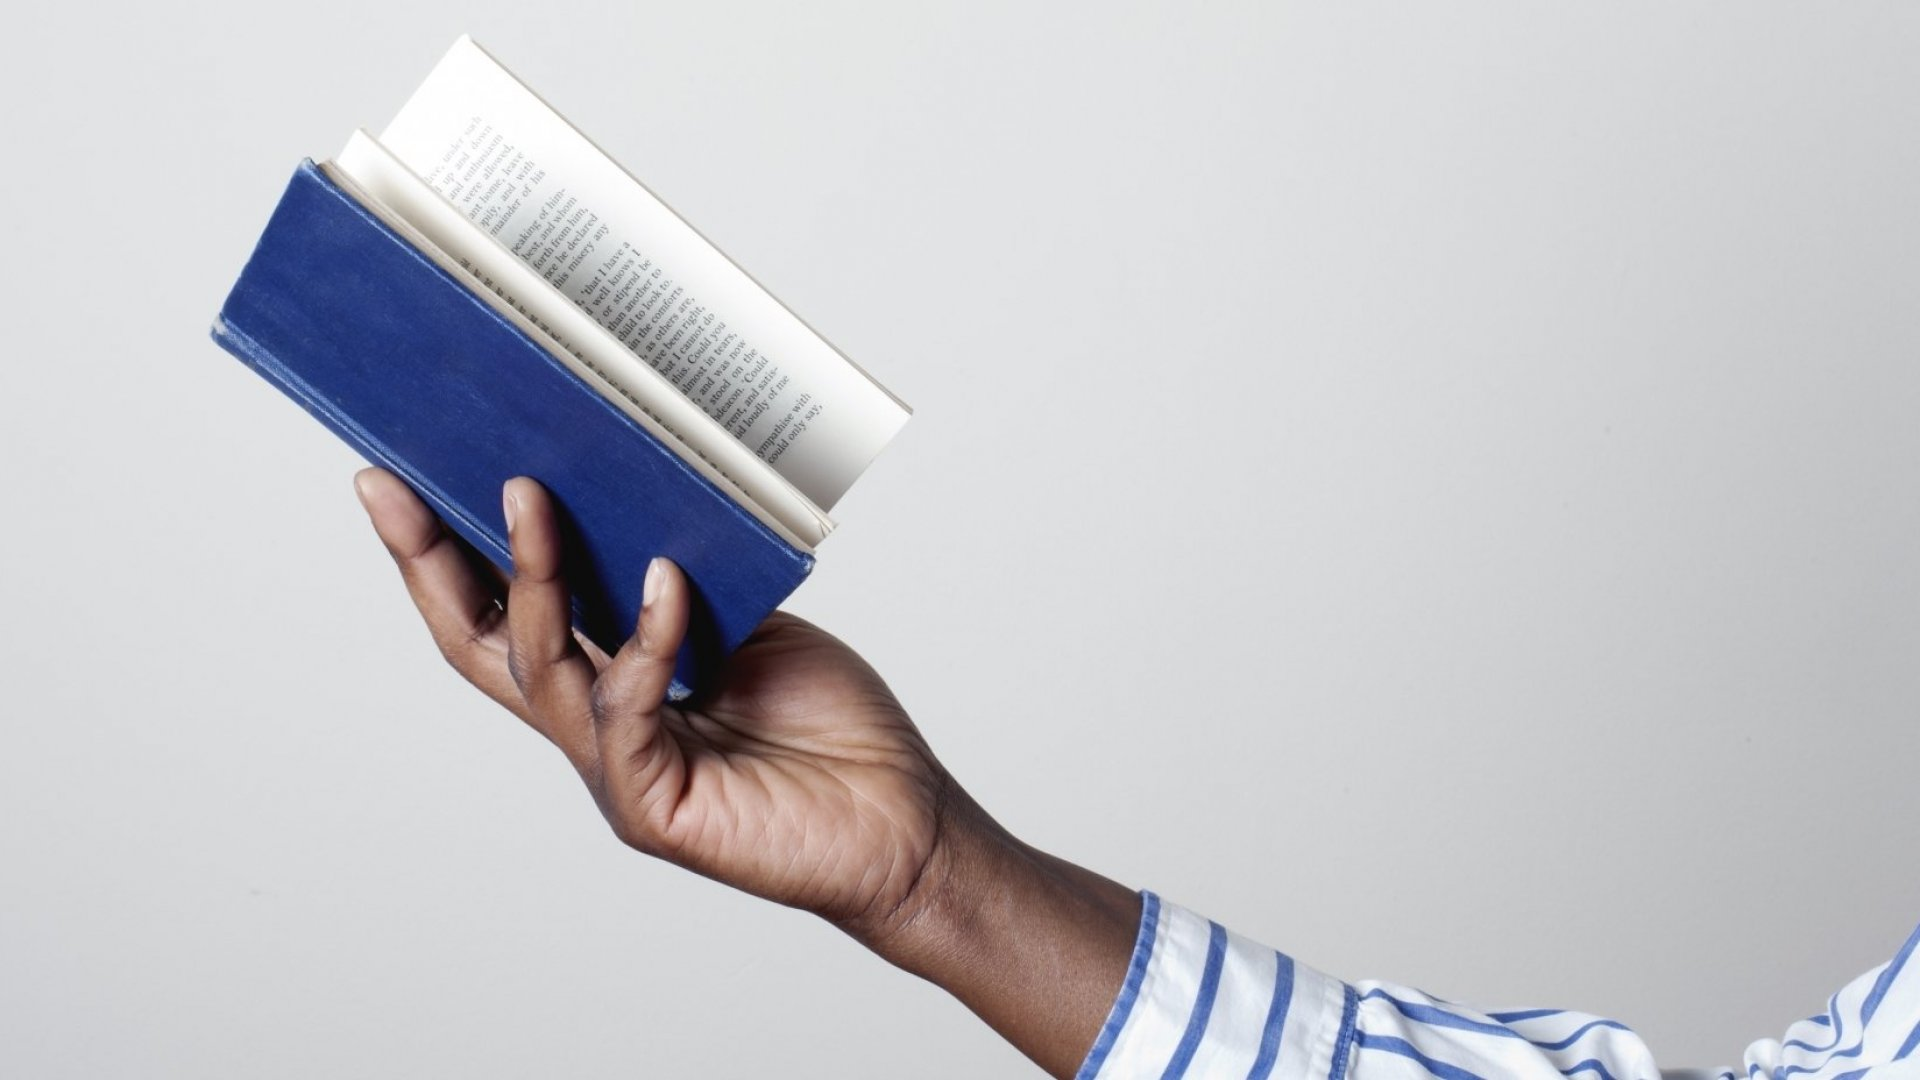 7 Must-Read Classic Business Books